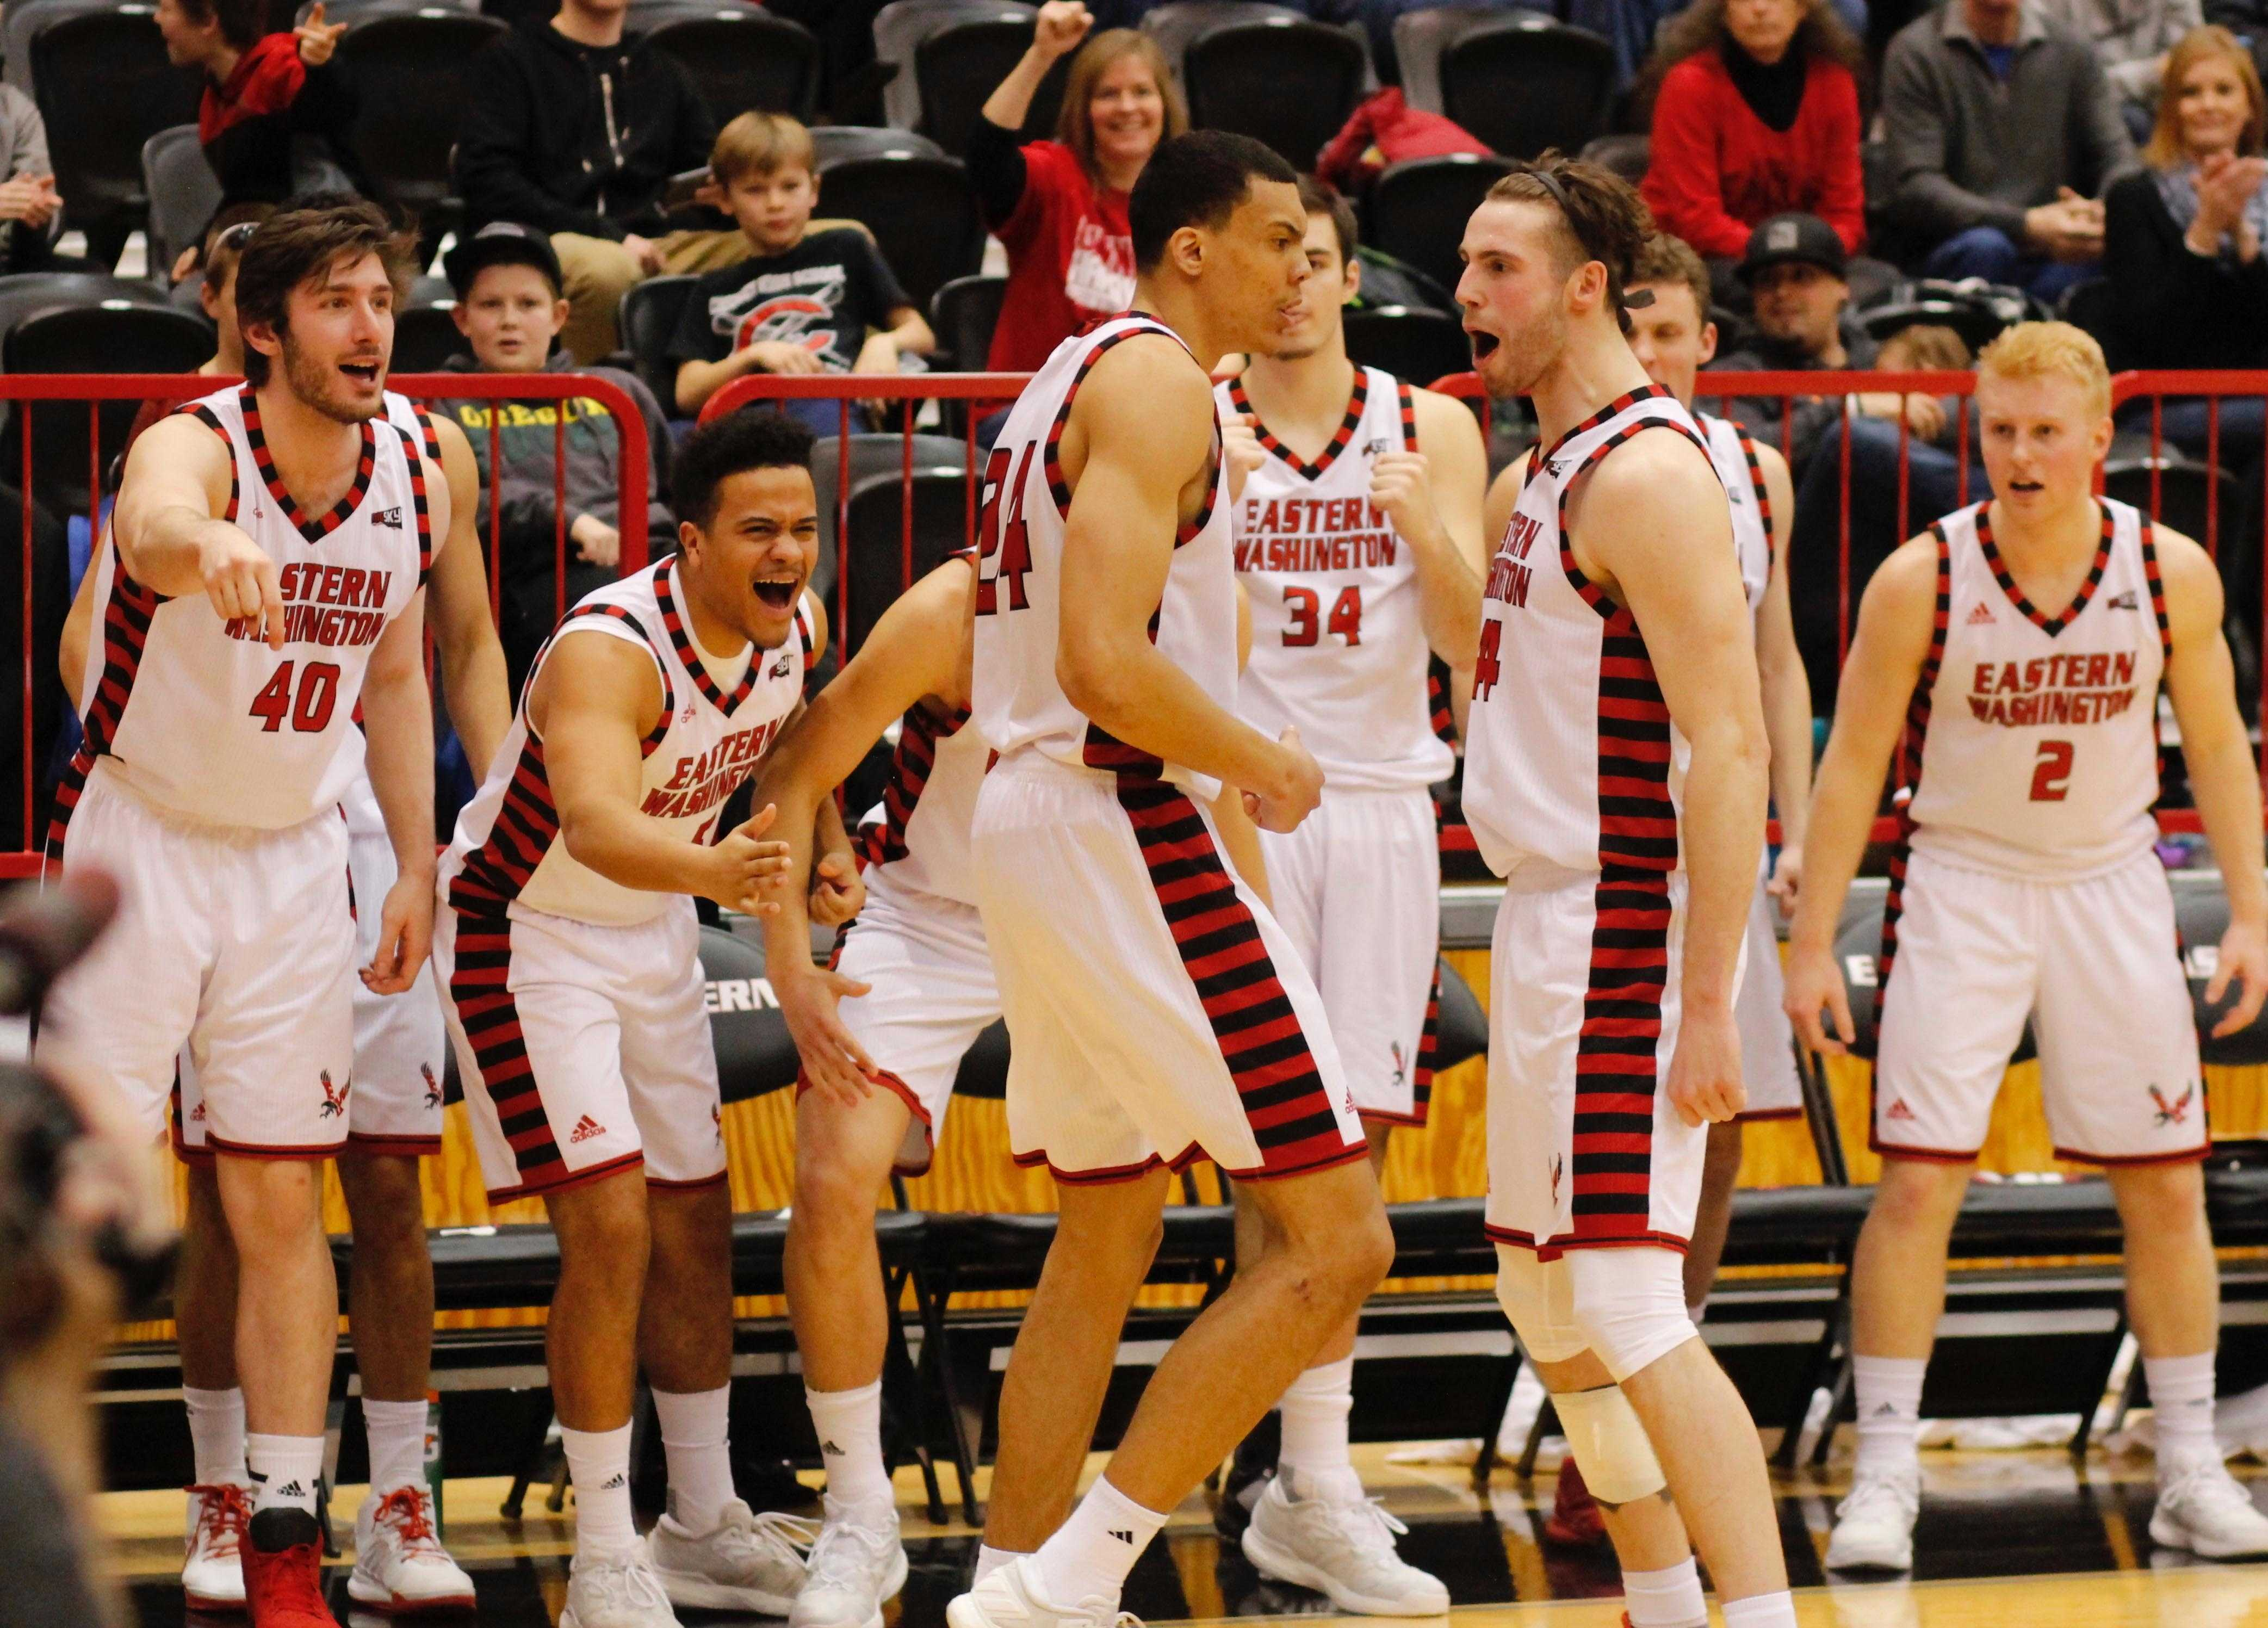 Senior+forward+Jake+Wiley+celebrates+with+the+team+by+the+bench+after+making+a+basket+and+getting+fouled+against+Portland+State%2C+Feb.+4%2C+2017%2C+at+Reese+Court.